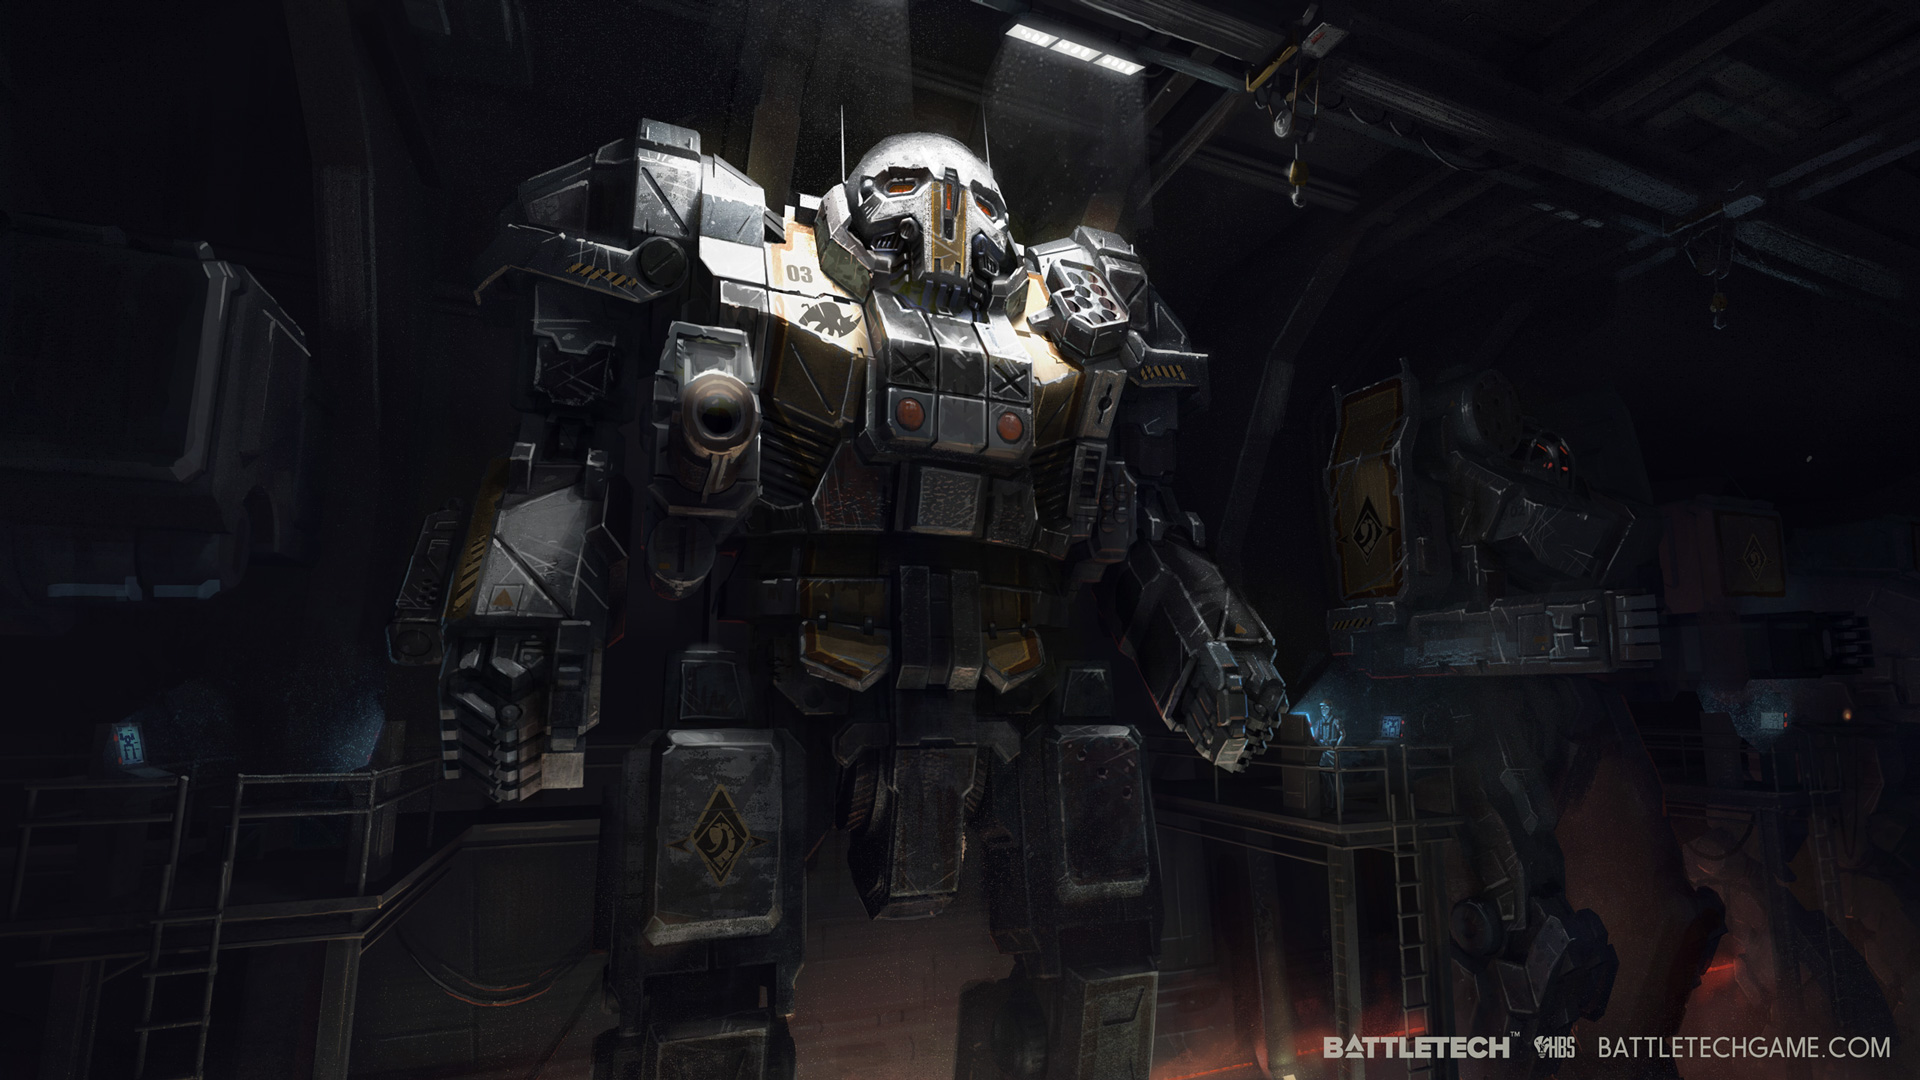 BattleTech Will Offer Strategic Depth of the Tabletop Game